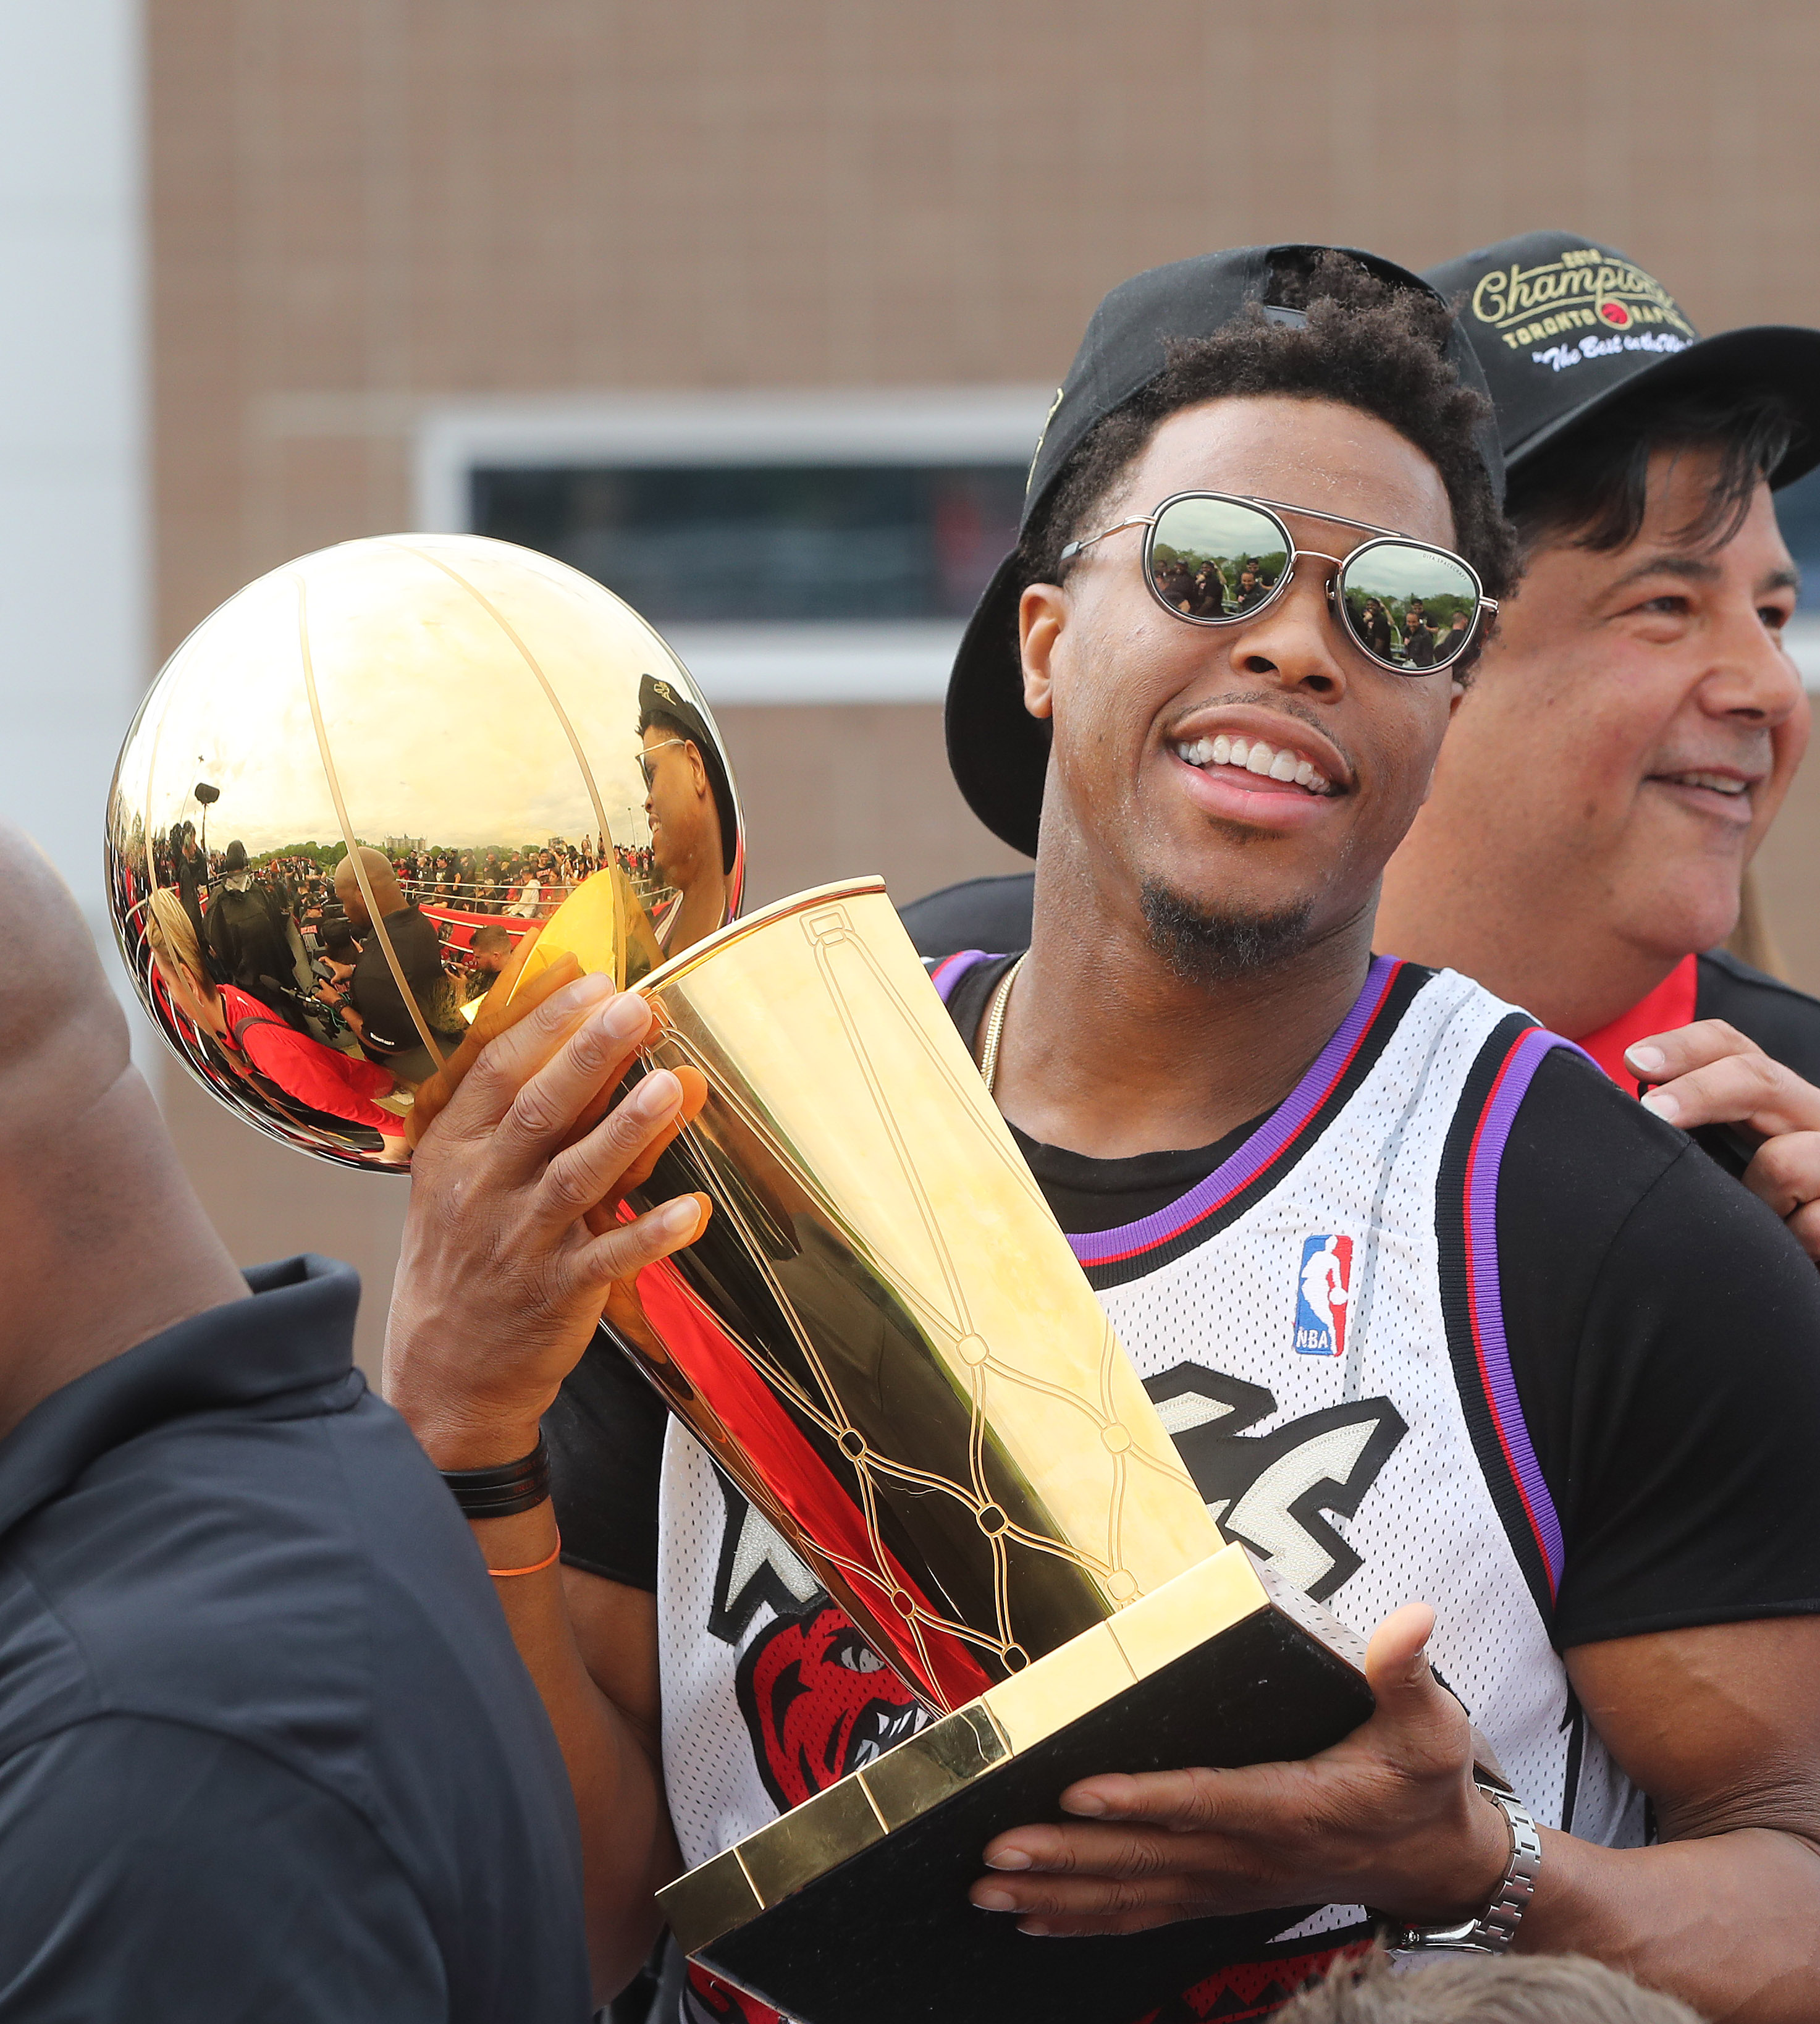 TORONTO, ON- JUNE 17 - Toronto Raptors guard Kyle Lowry (7) as the Toronto Raptors hold their victory parade after beating the Golden State Warriors in the NBA Finals in Toronto. June 17, 2019. (Steve Russell/Toronto Star via Getty Images)